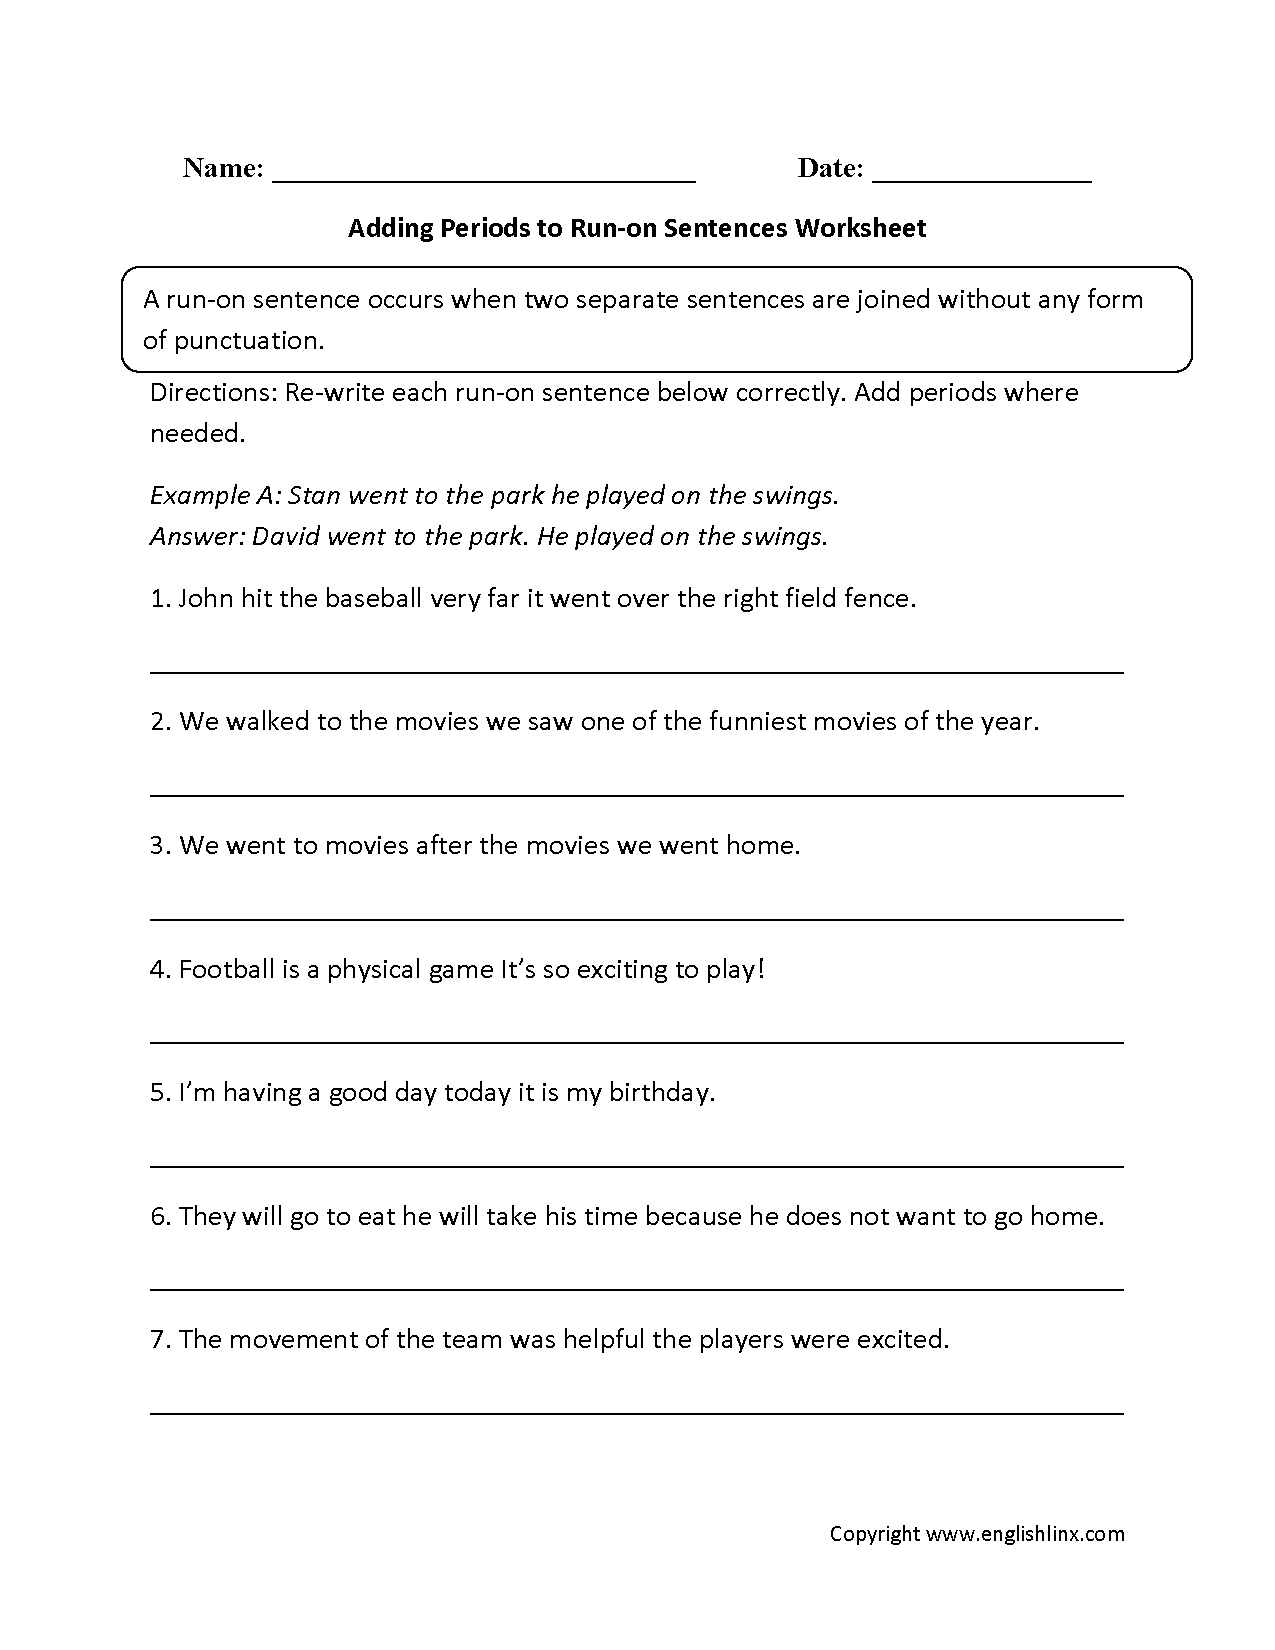 Sentences Worksheets | Run On Sentences Worksheets | Free Printable Worksheets On Run On Sentences